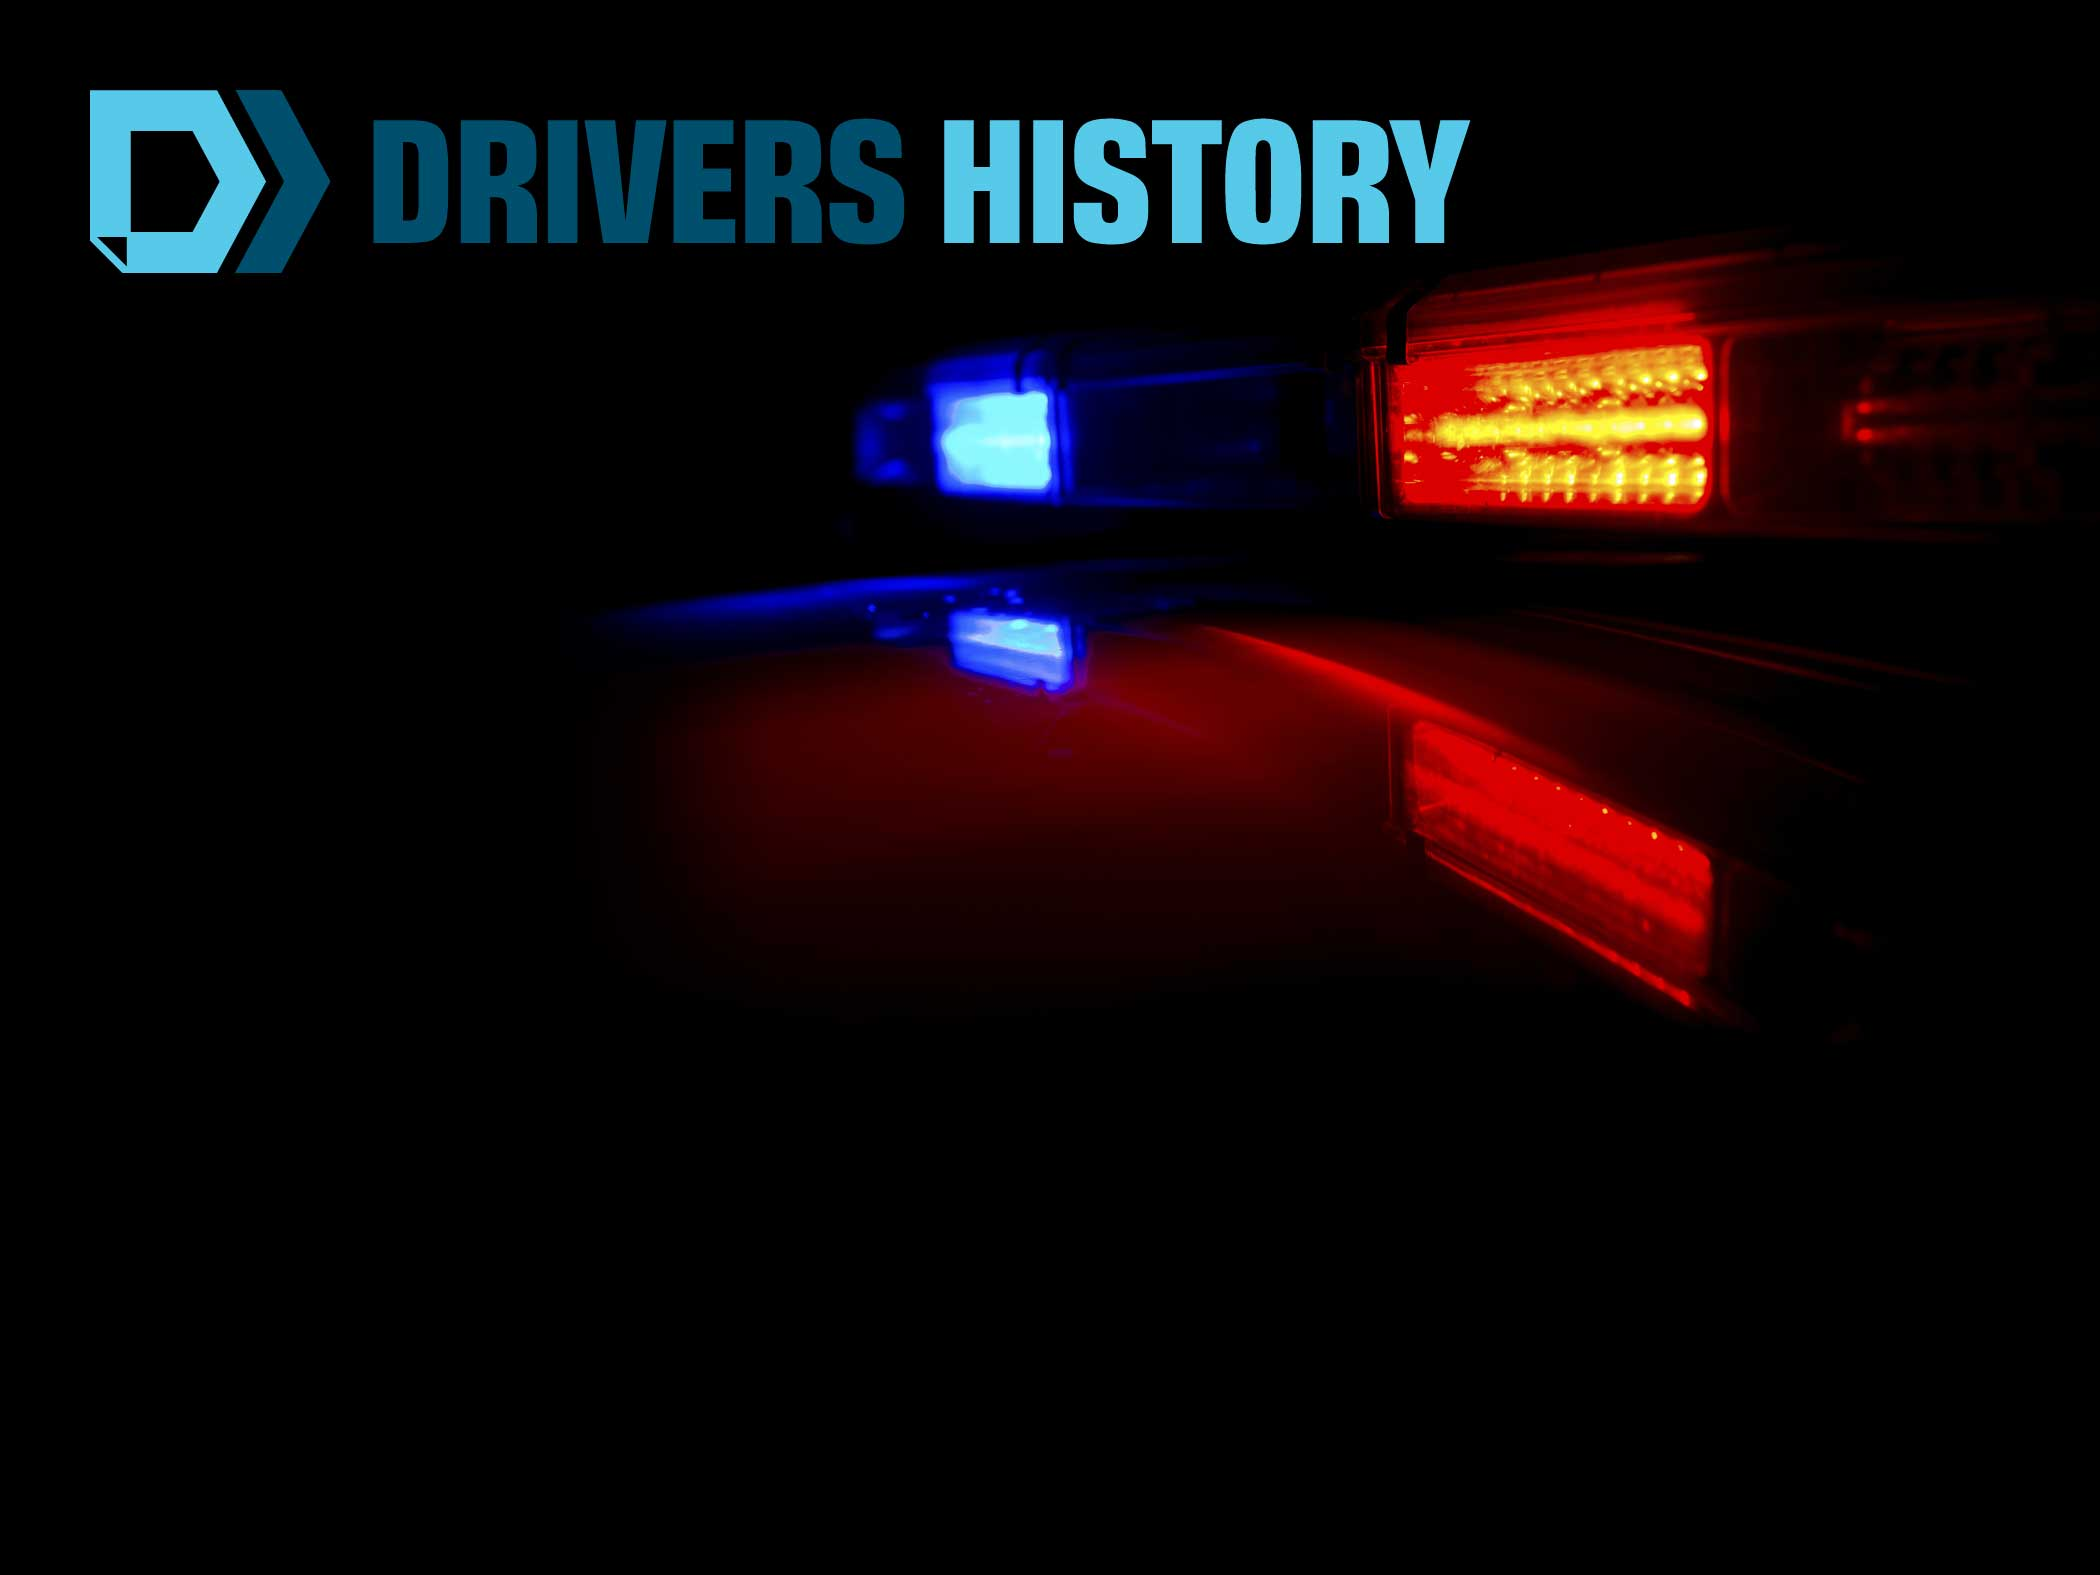 DocIT from Drivers History